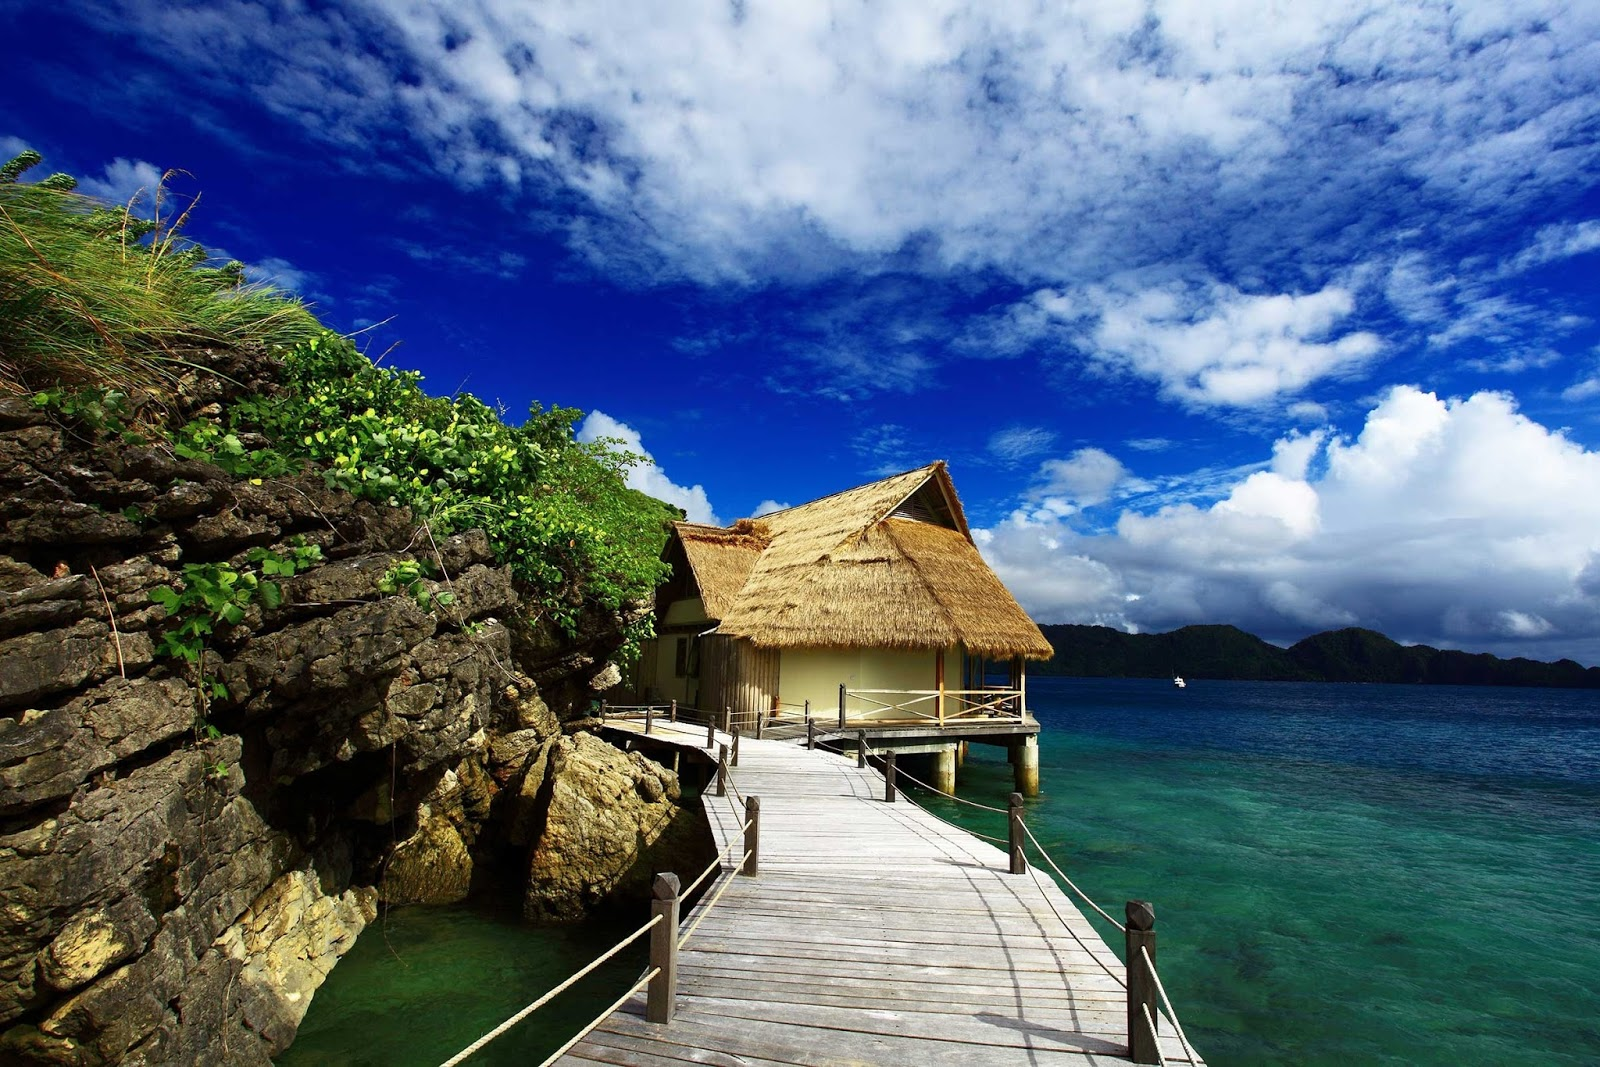 raja ampat island, misool island, tourist attraction